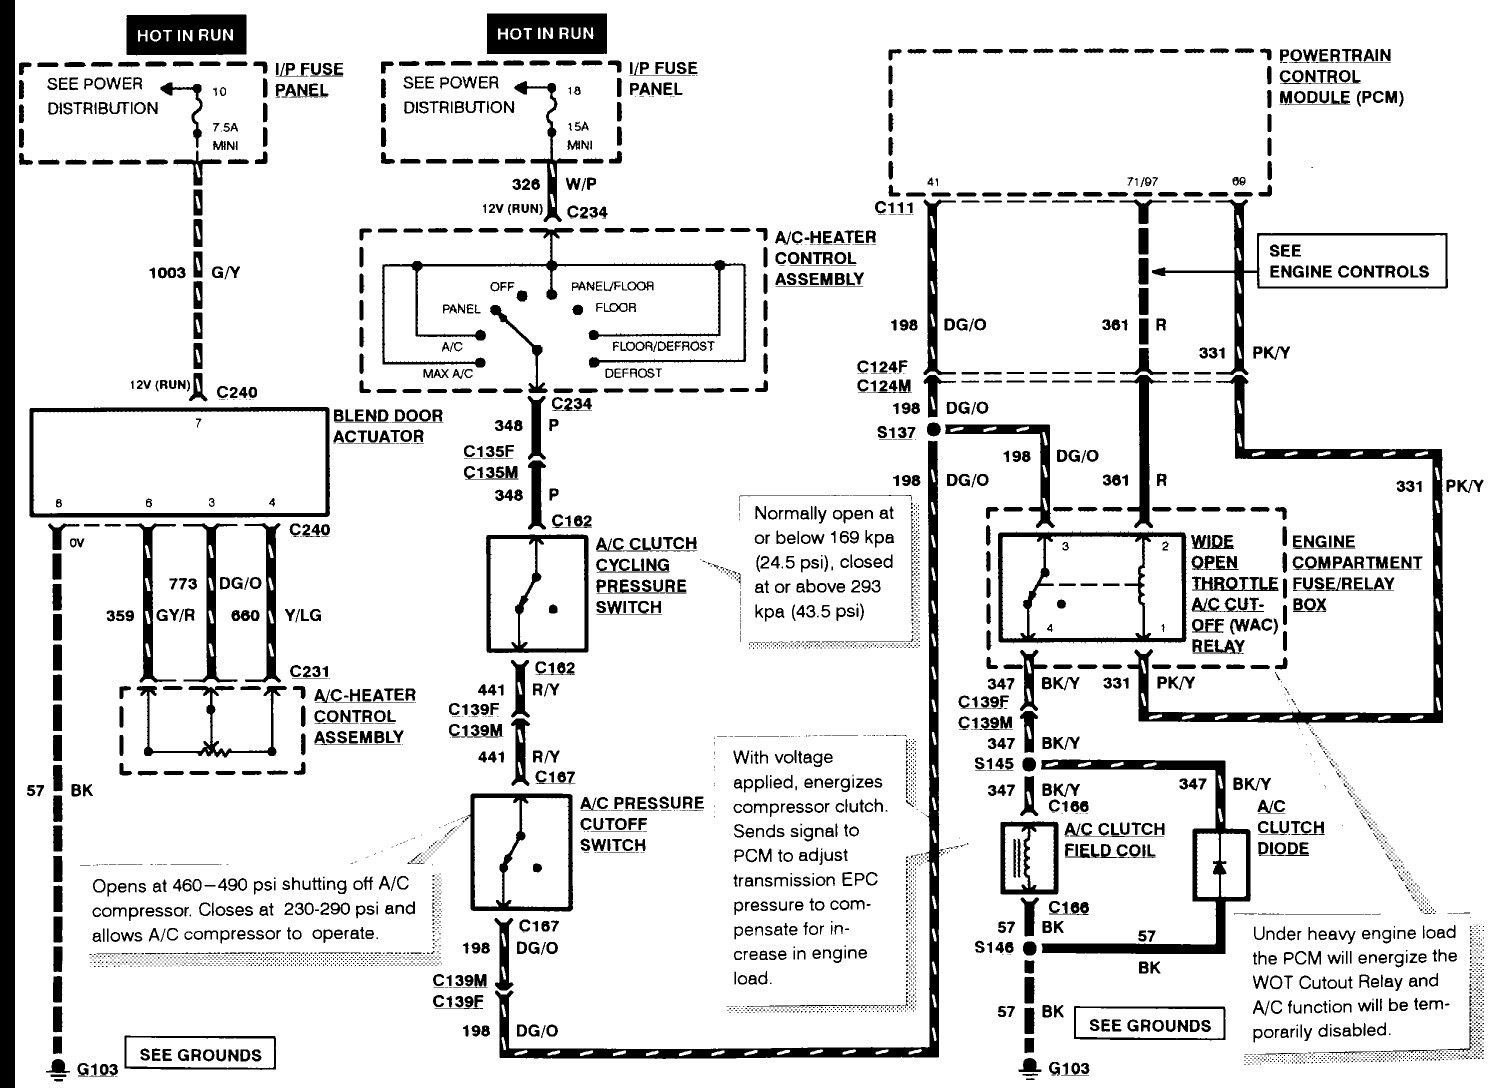 2006 Ford F350 Trailer Wiring Diagram - Panoramabypatysesma - 2006 Ford F350 Trailer Wiring Diagram